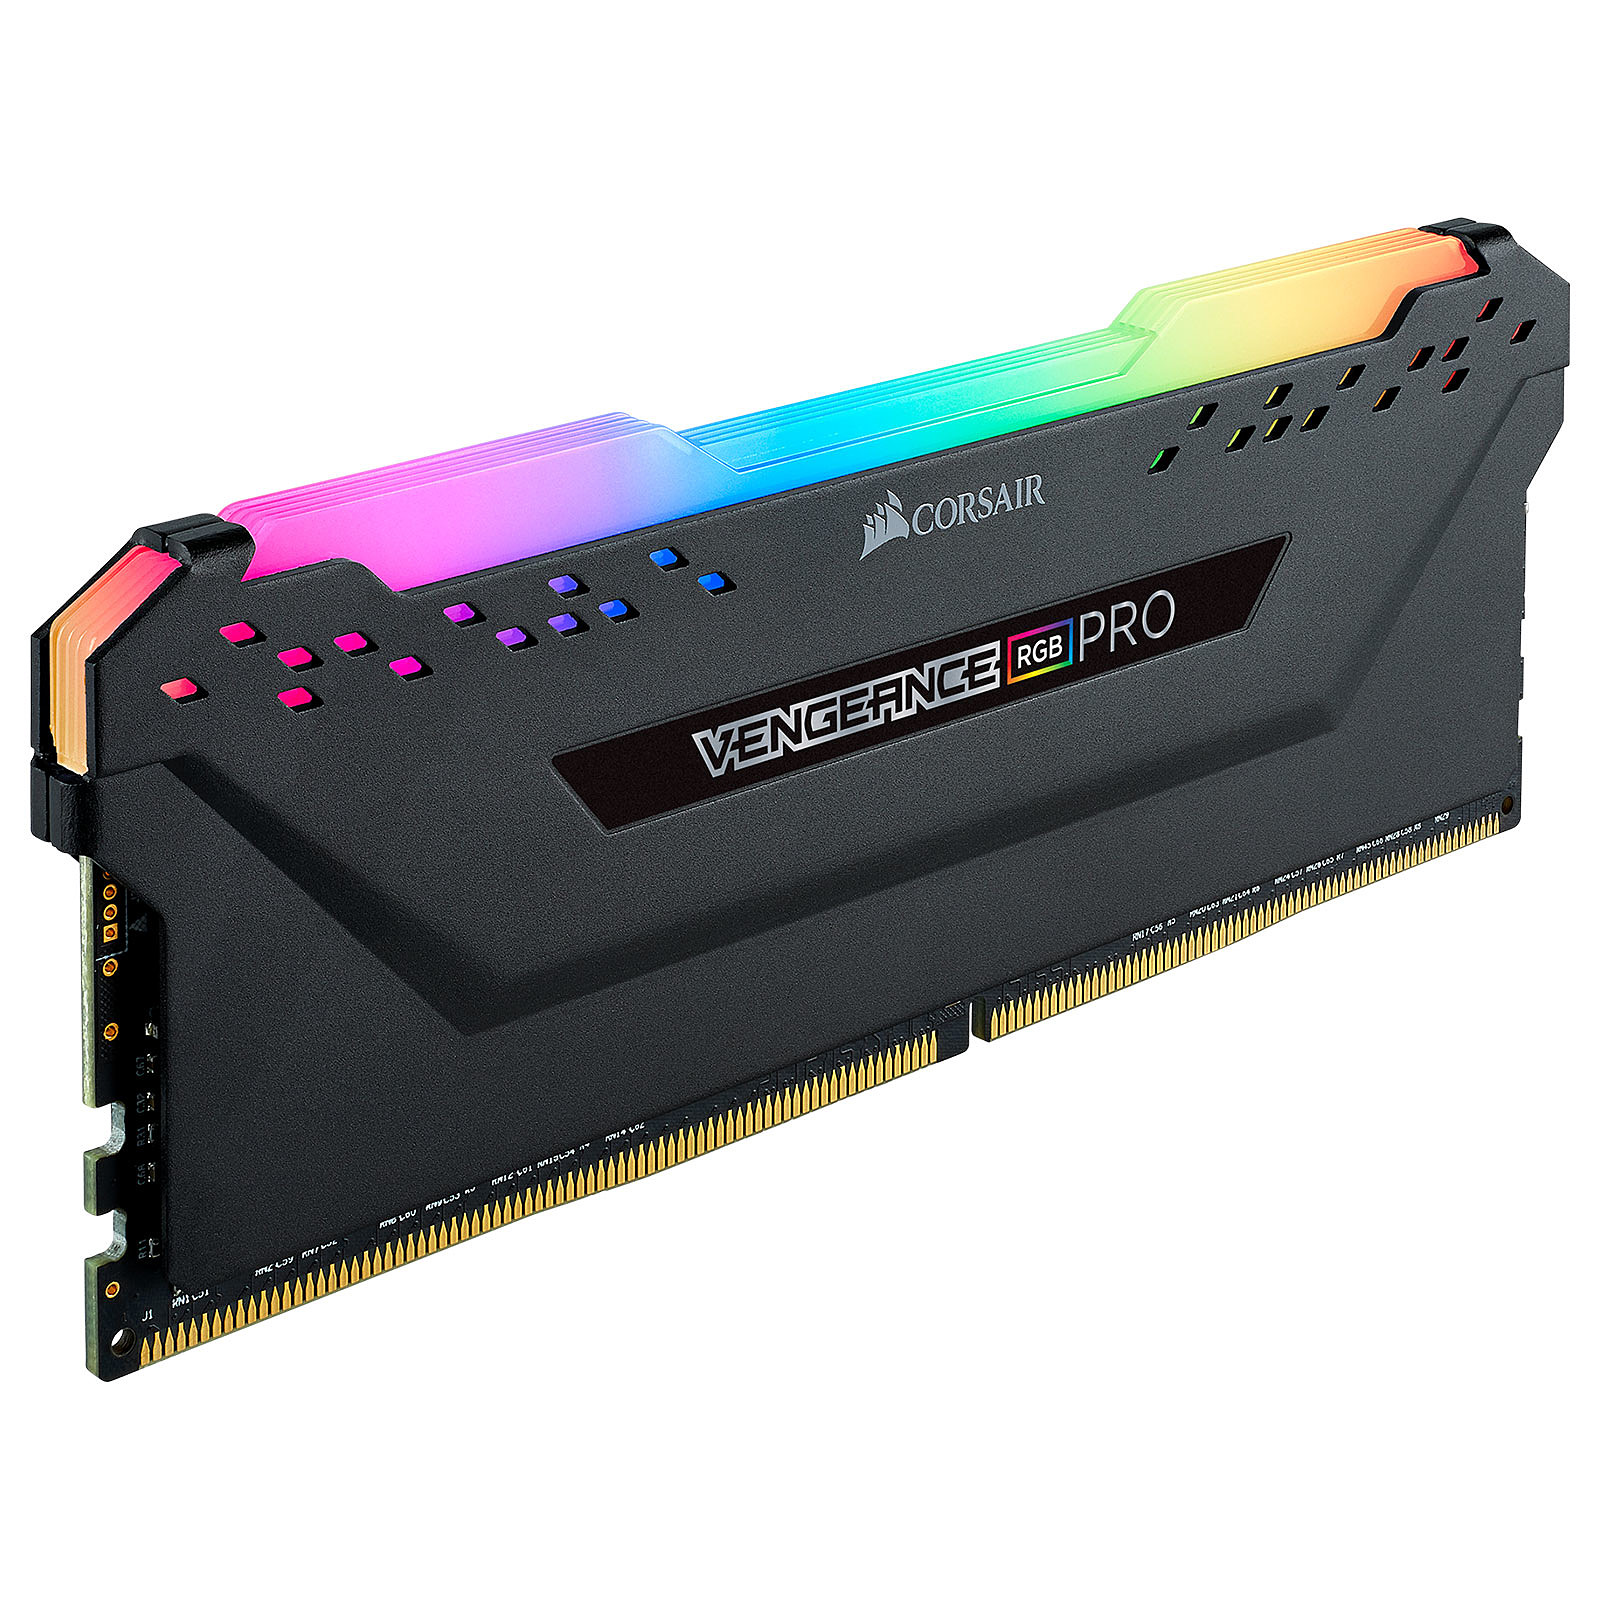 Corsair Vengeance RGB PRO Series 16 GB DDR4 3200 MHz CL16